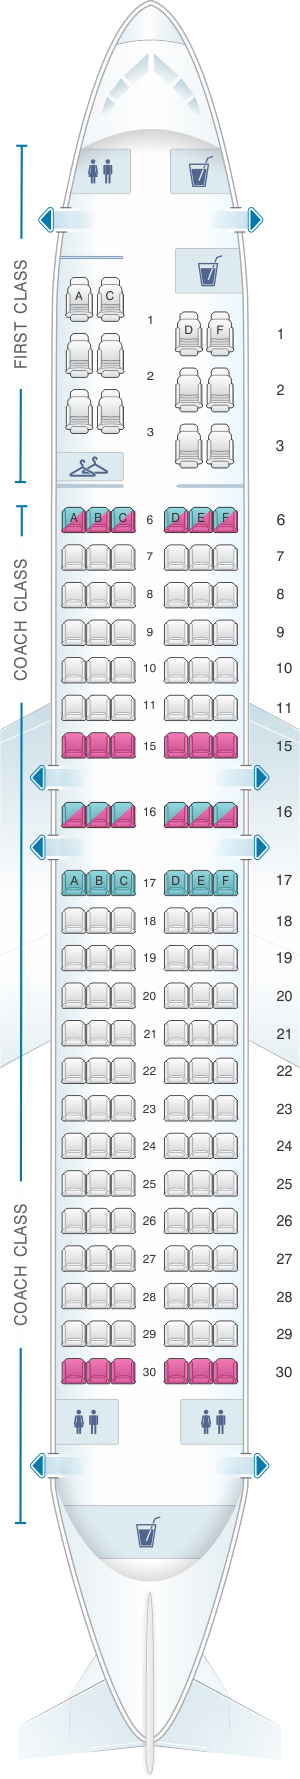 Seat map for Alaska Airlines - Horizon Air Boeing B737 400